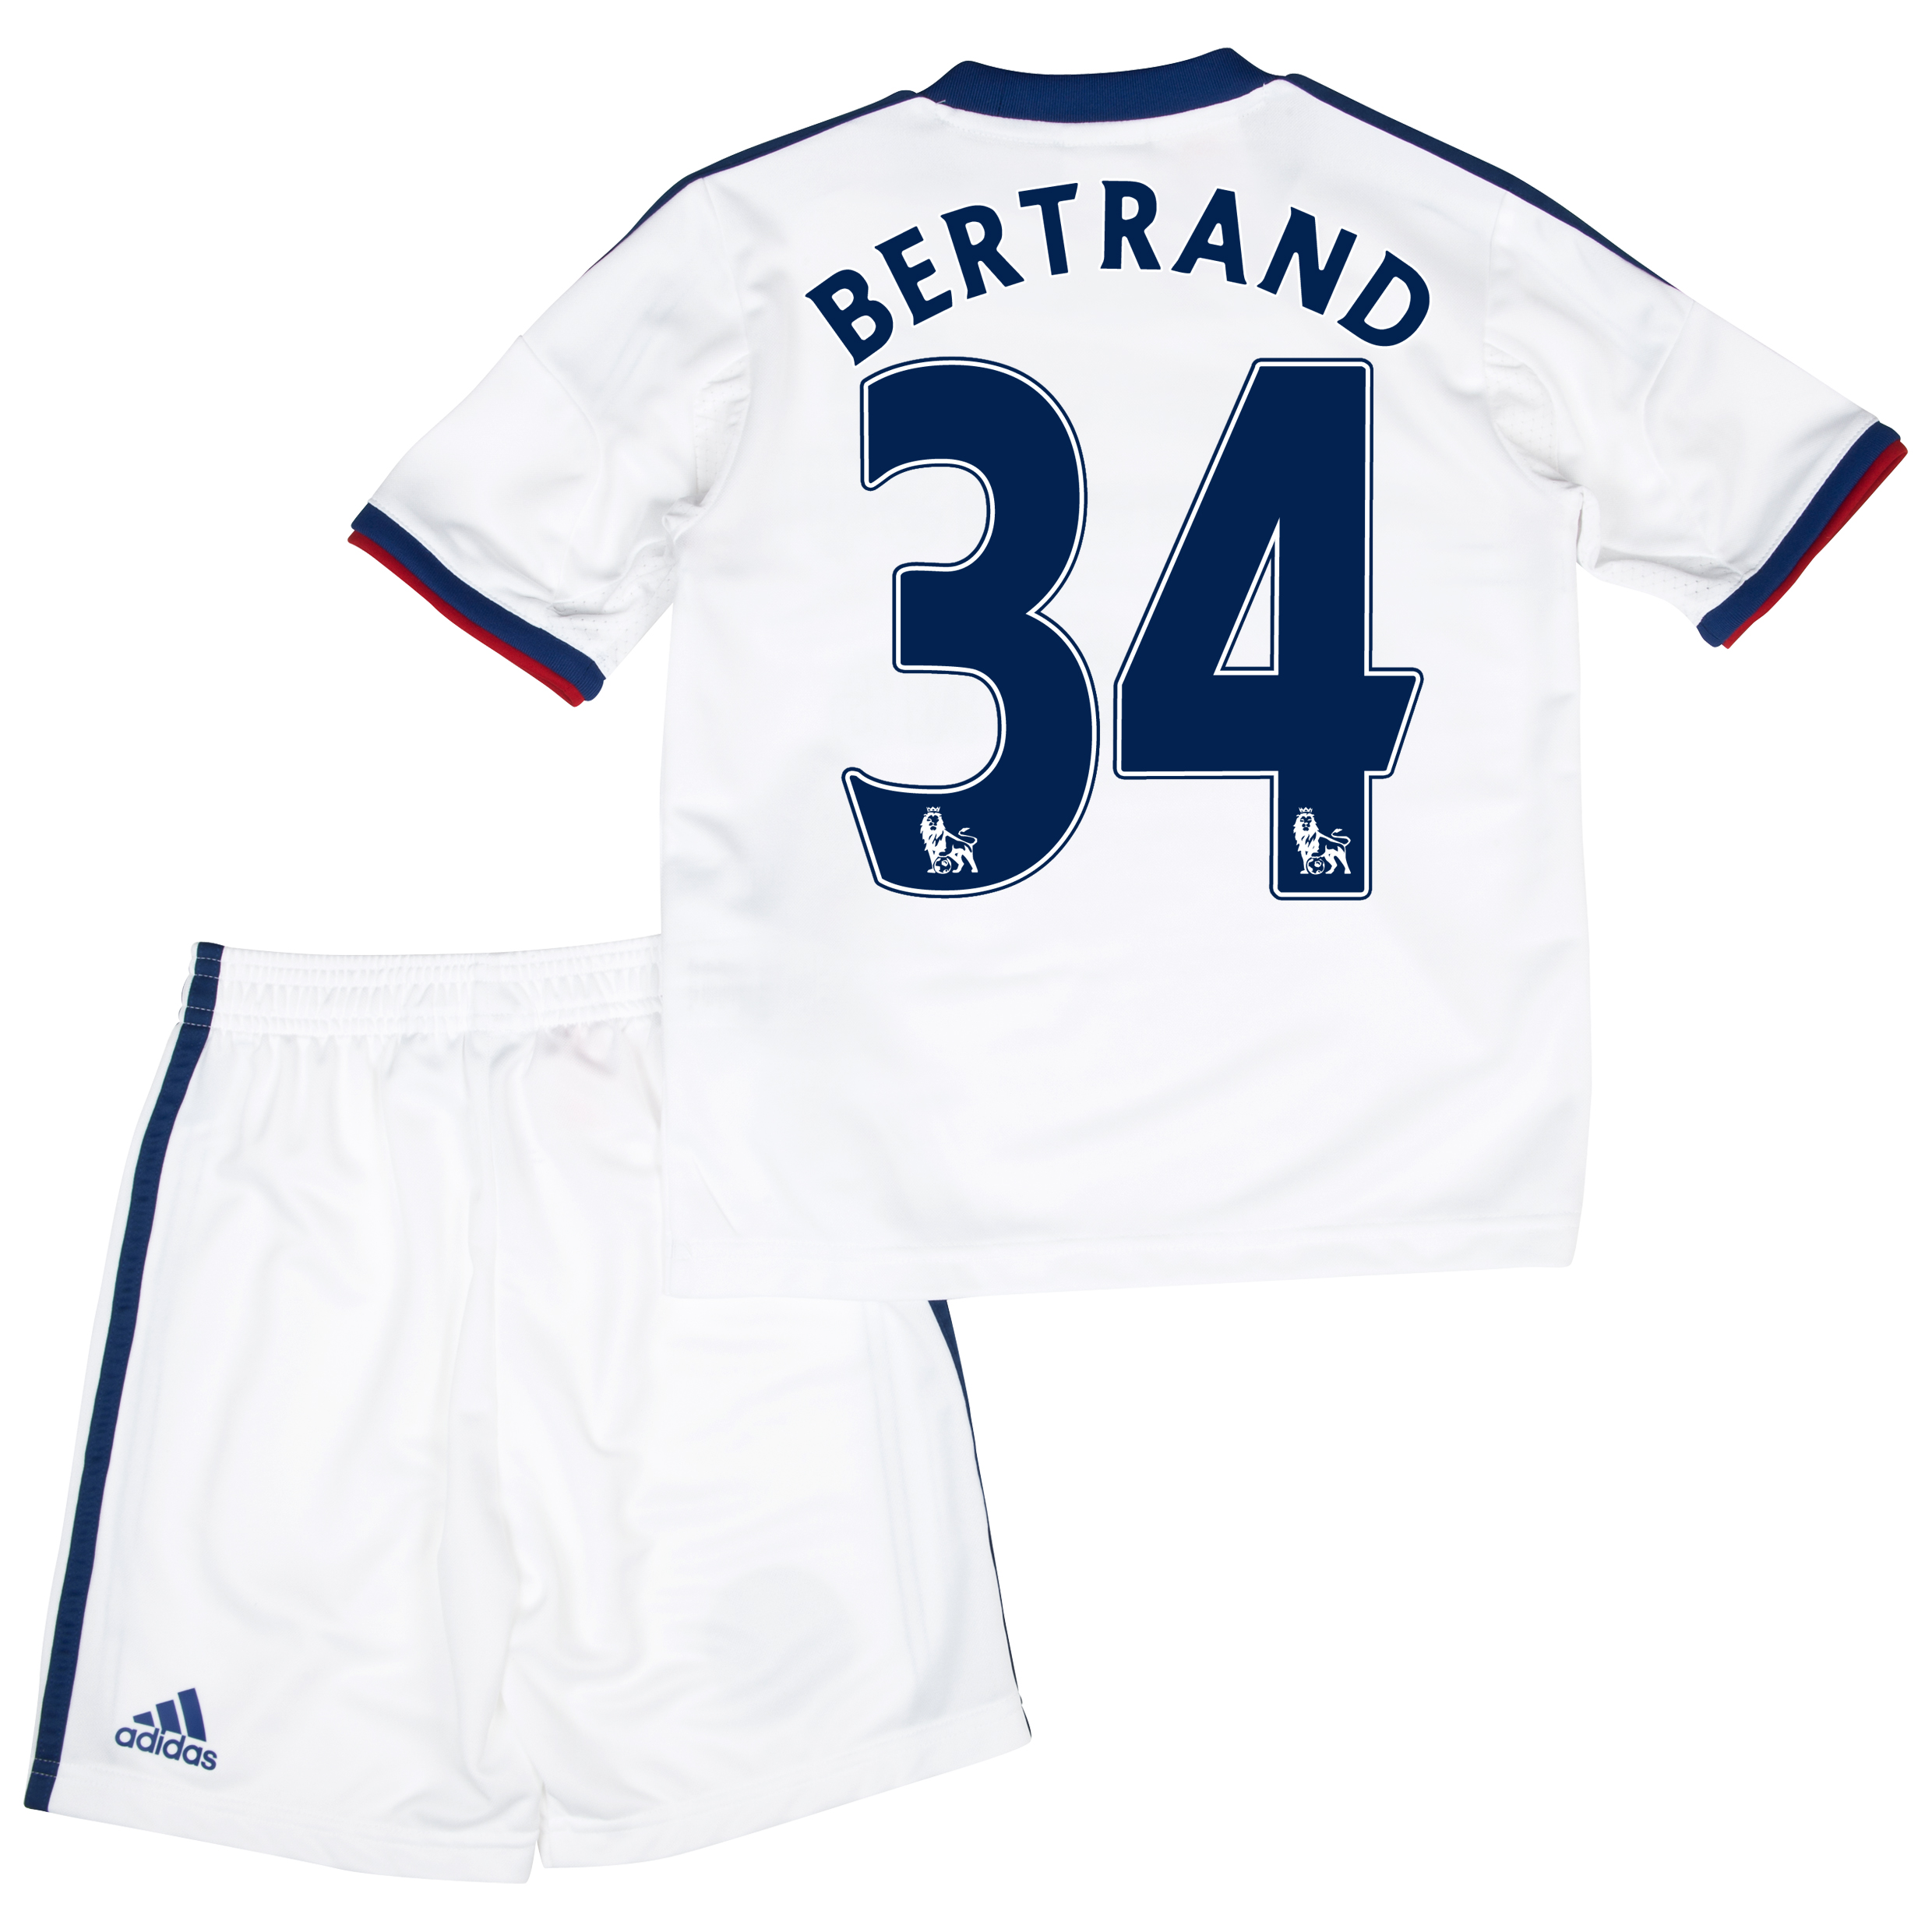 Chelsea Away Mini Kit 2013/14 with Bertrand 34 printing